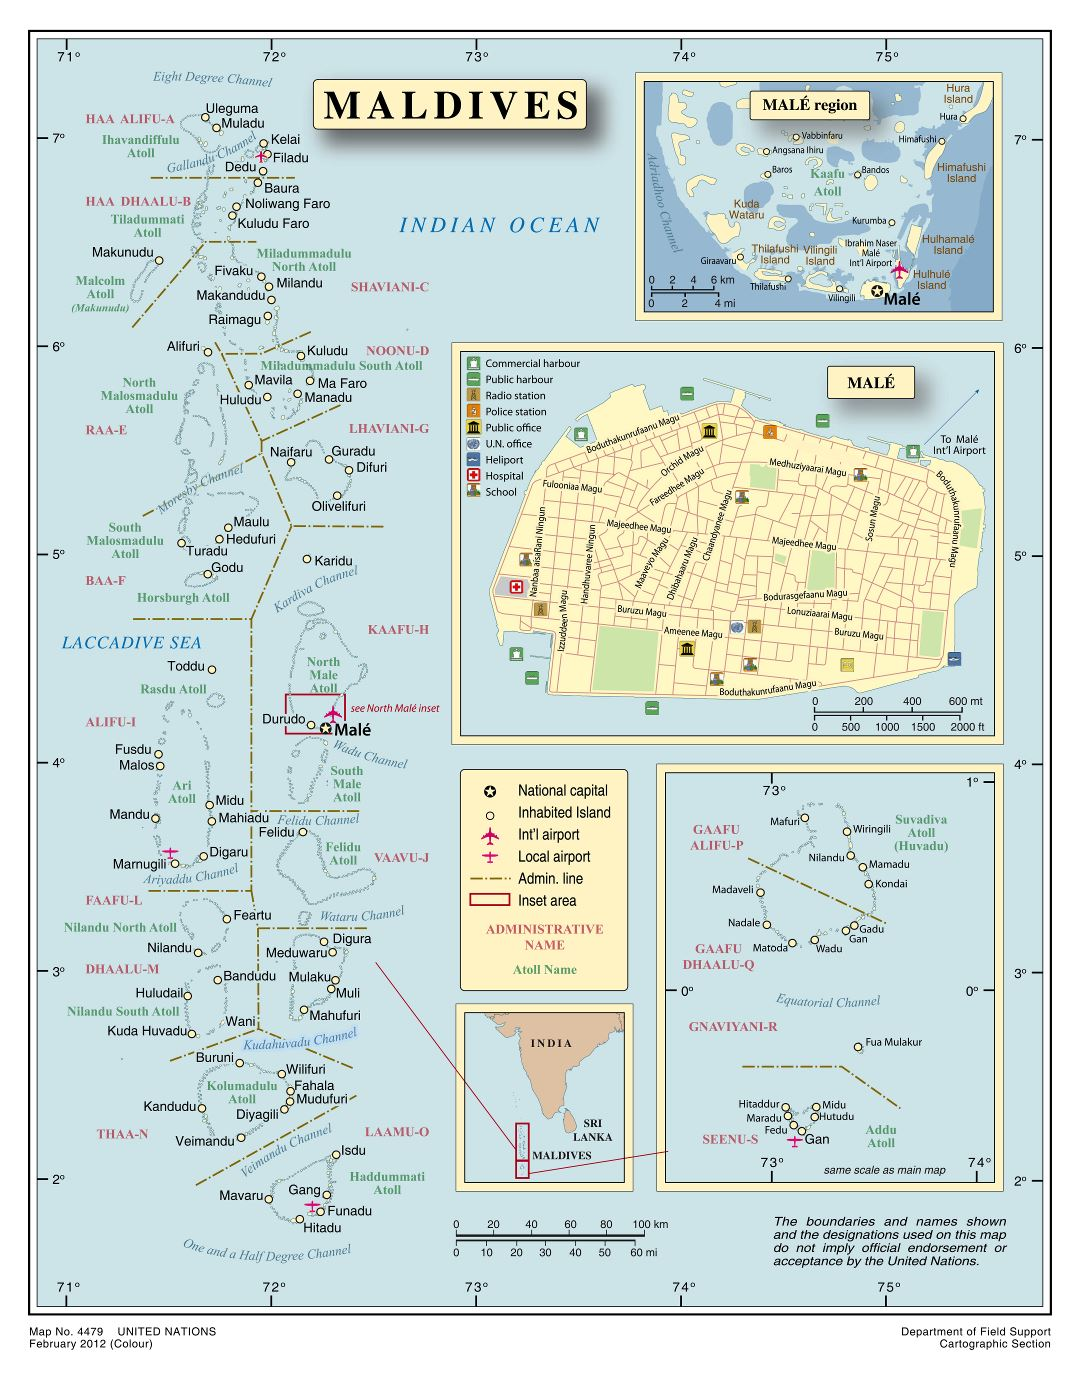 Large scale political and administrative map of Maldives with cities and airports